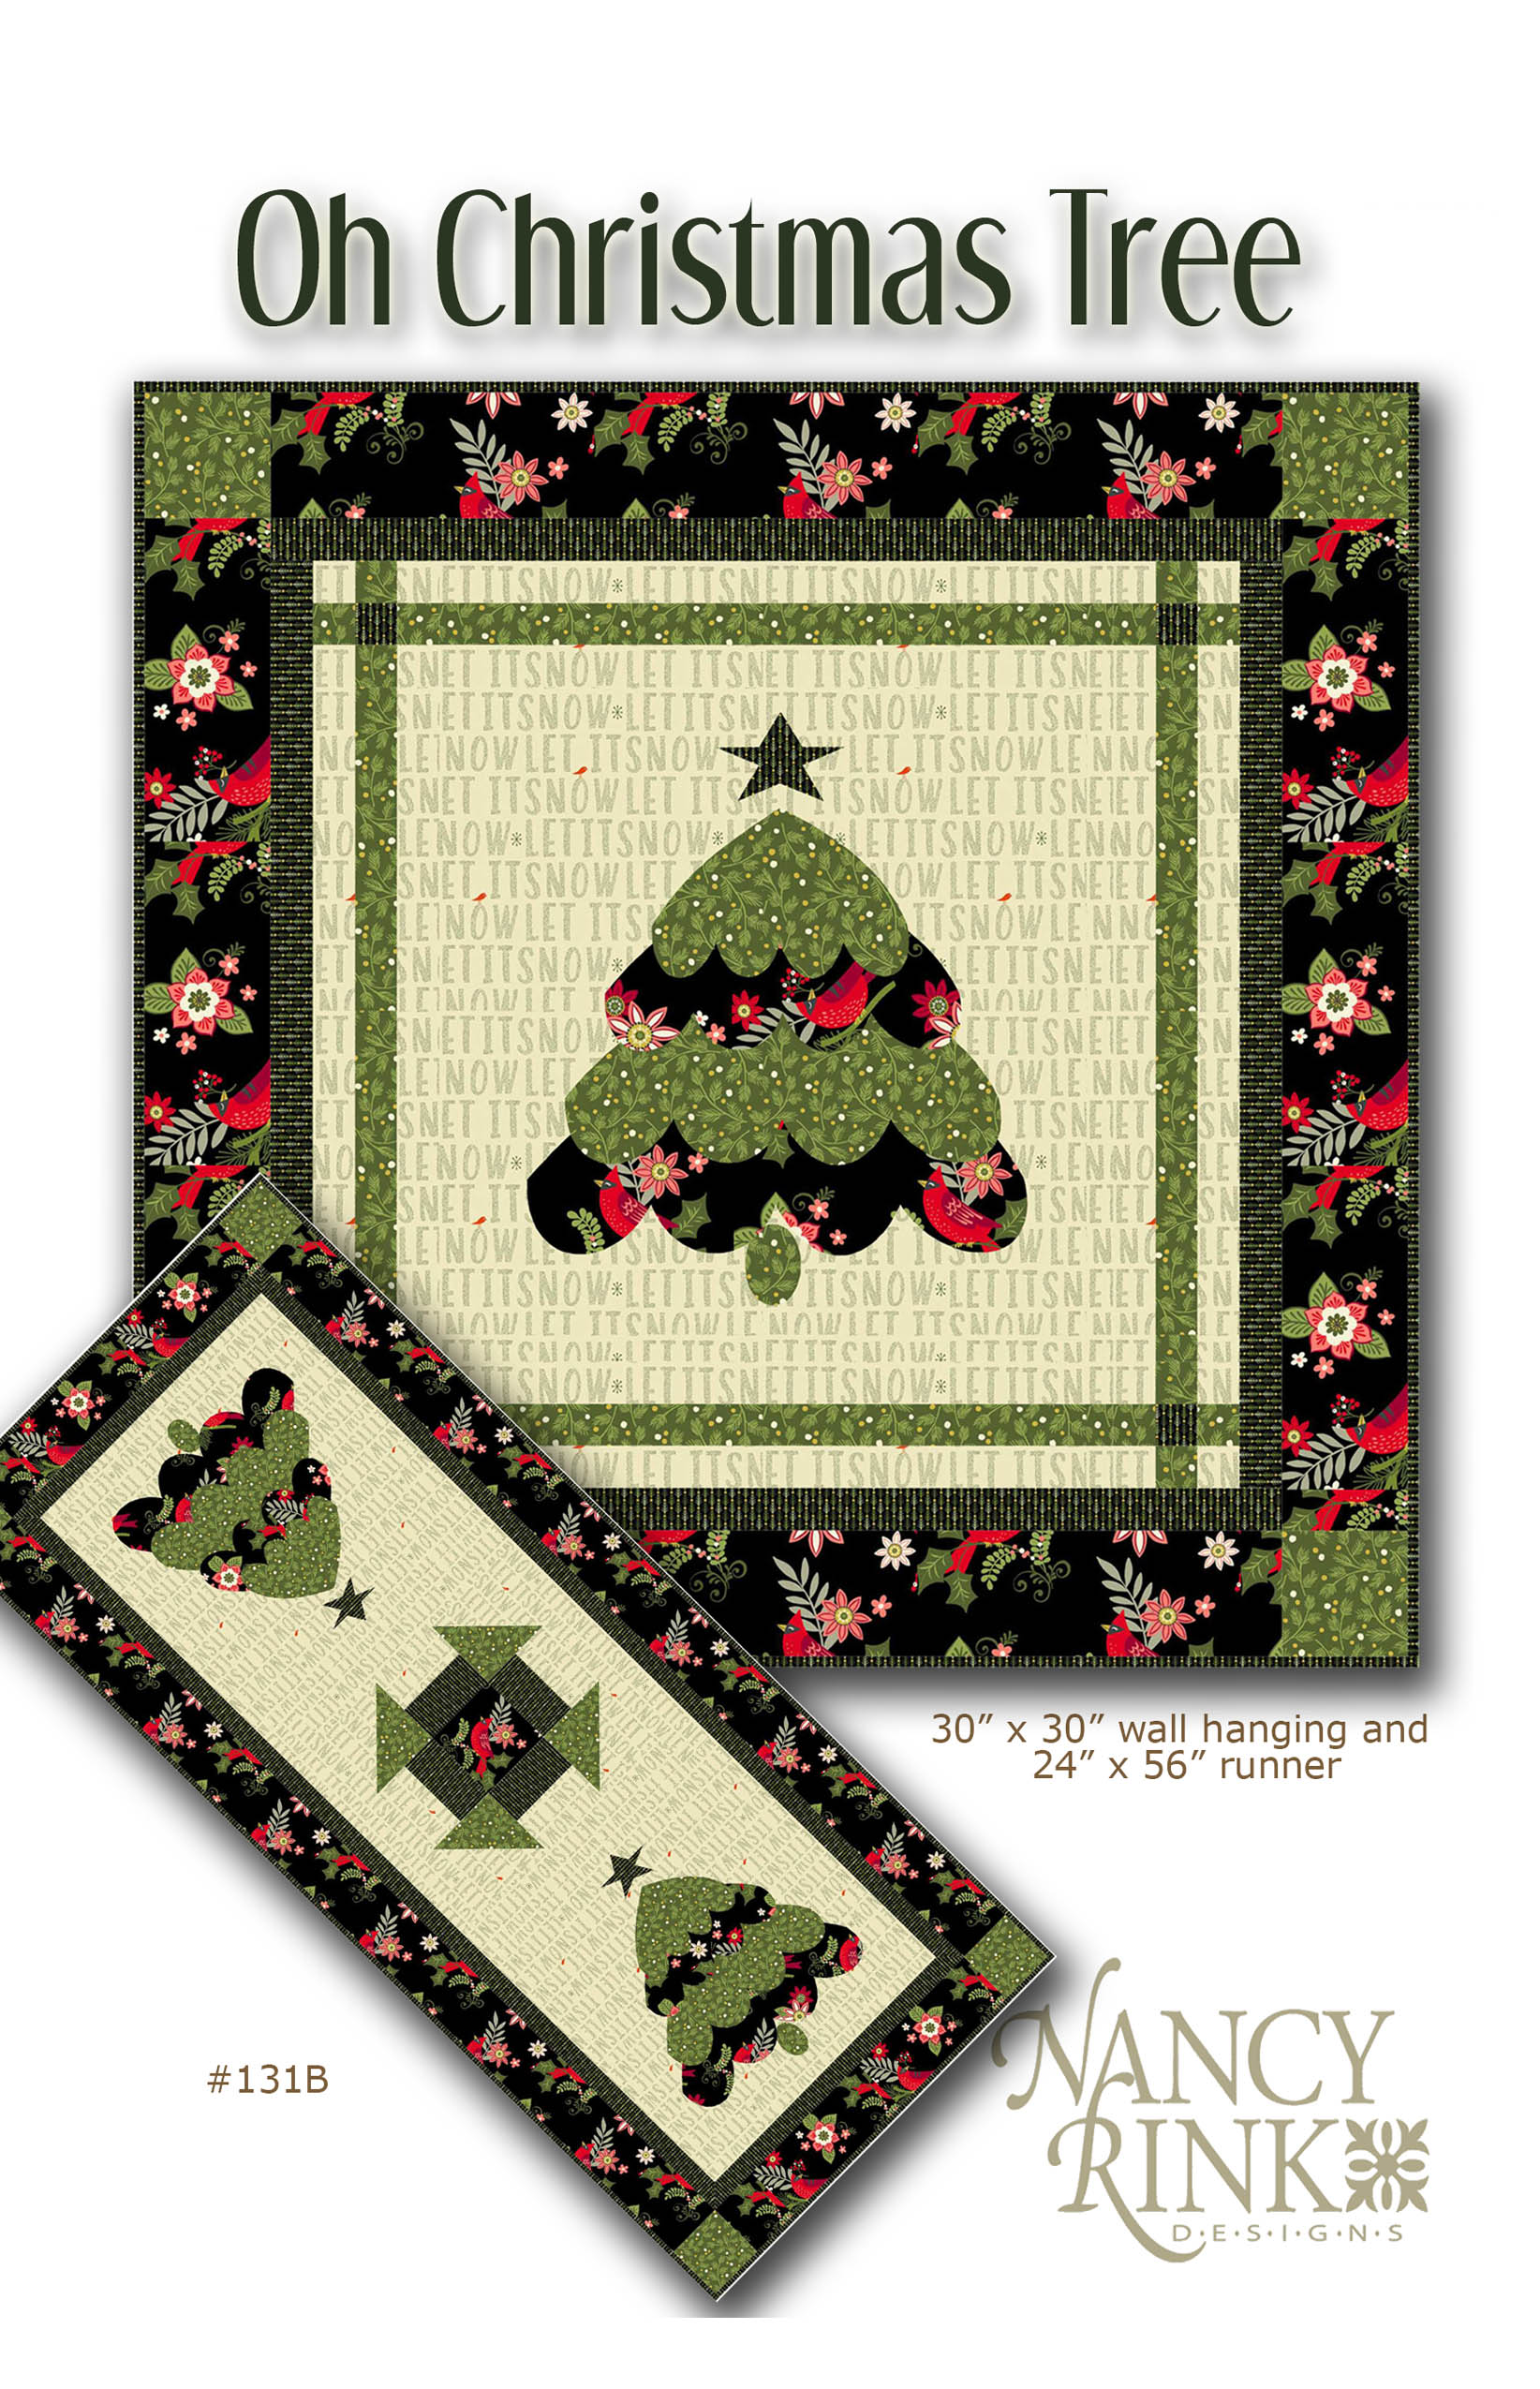 #118 Oh Christmas Tree pattern